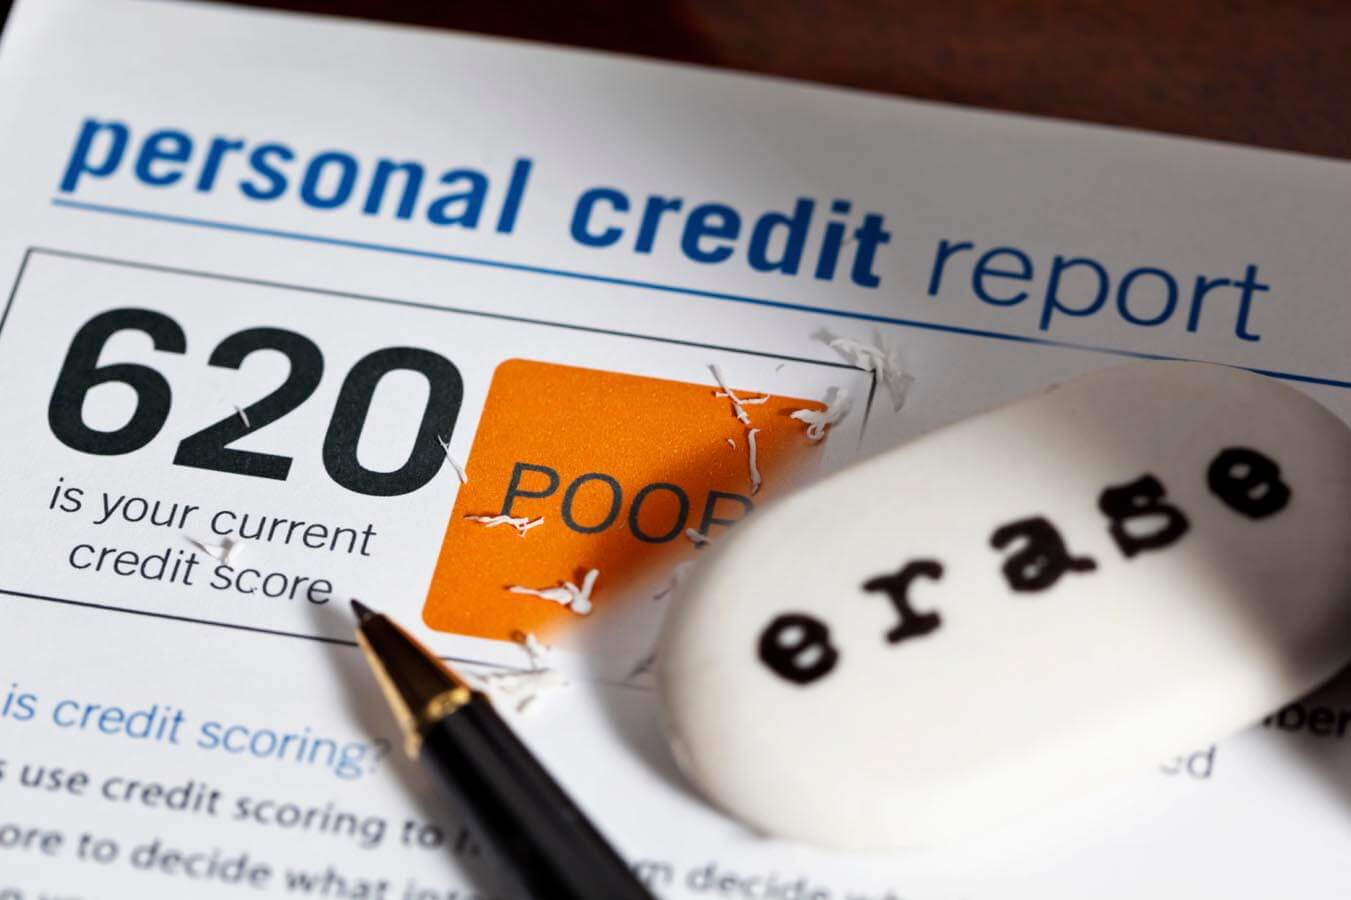 Rebuild your credit for a better credit score